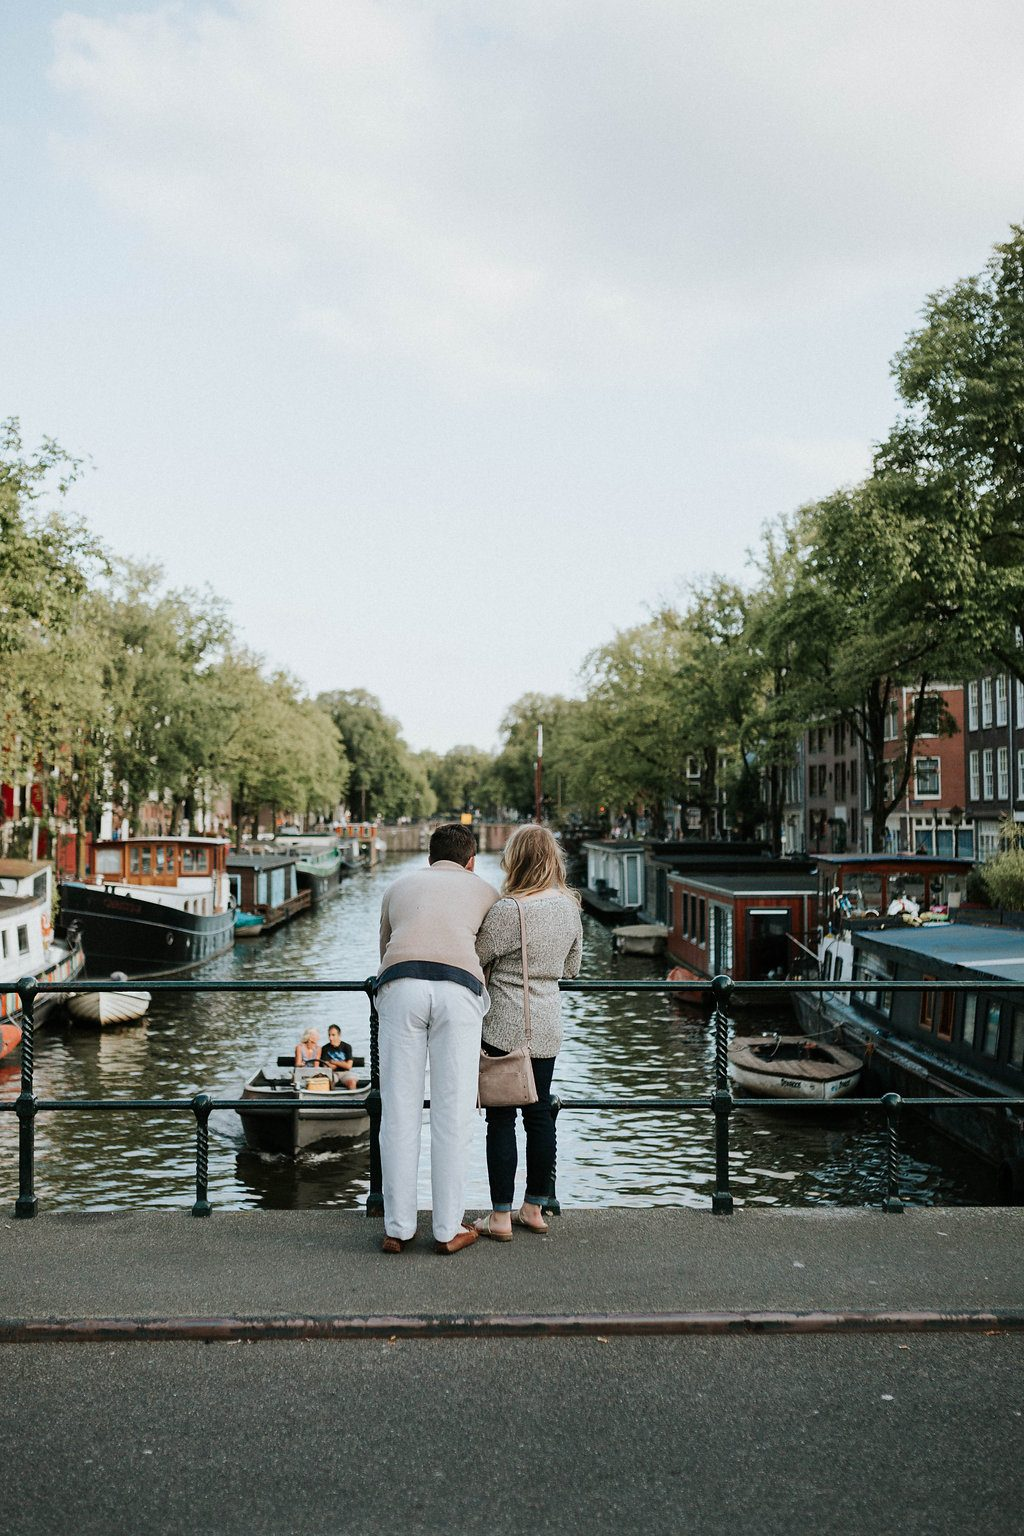 Marriage Proposal in Amsterdam